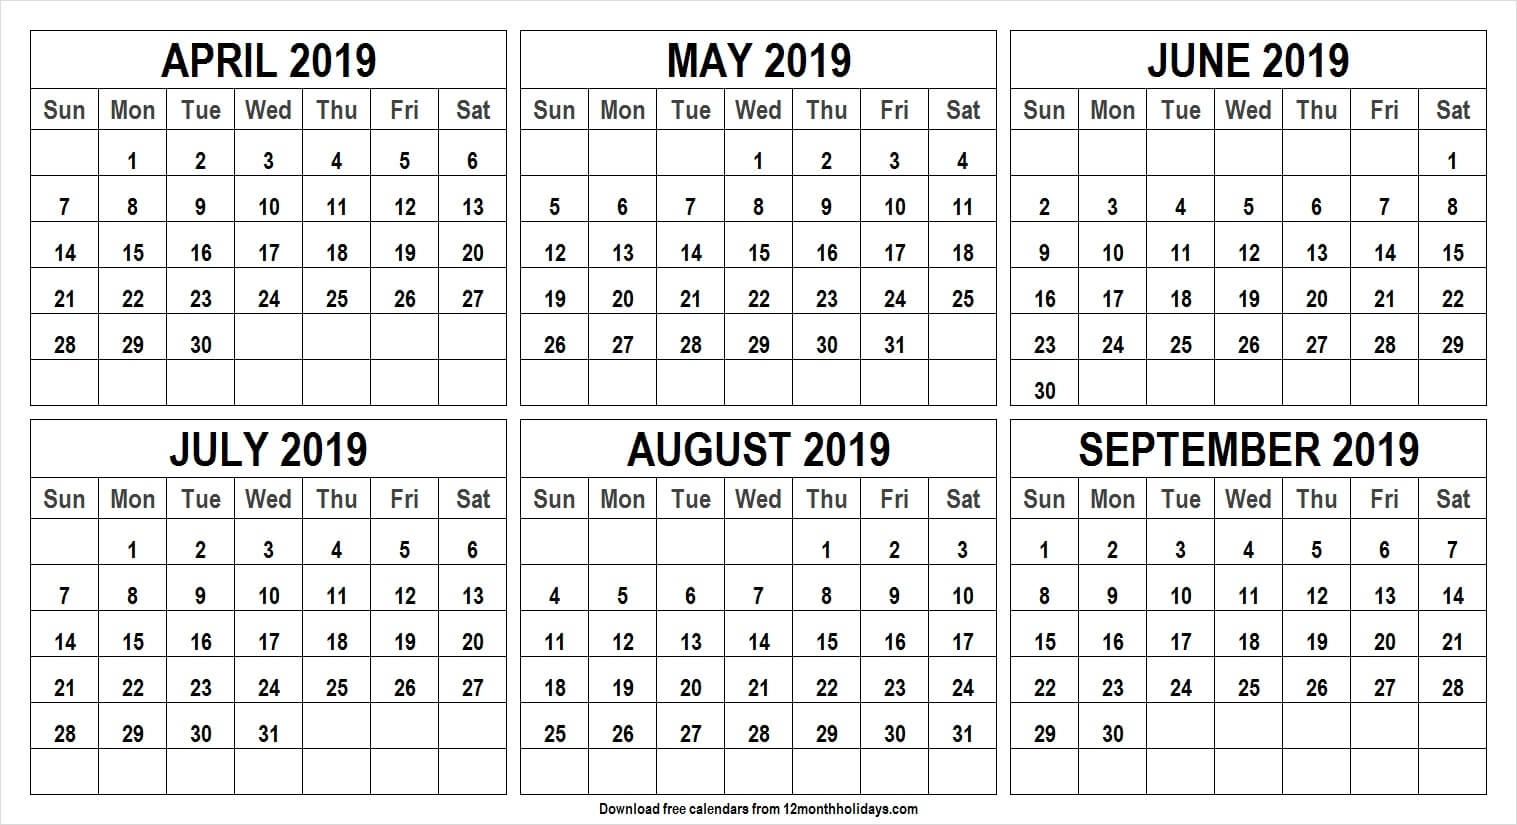 April September 2019 Half Year Calendar All 12 Month Calendar